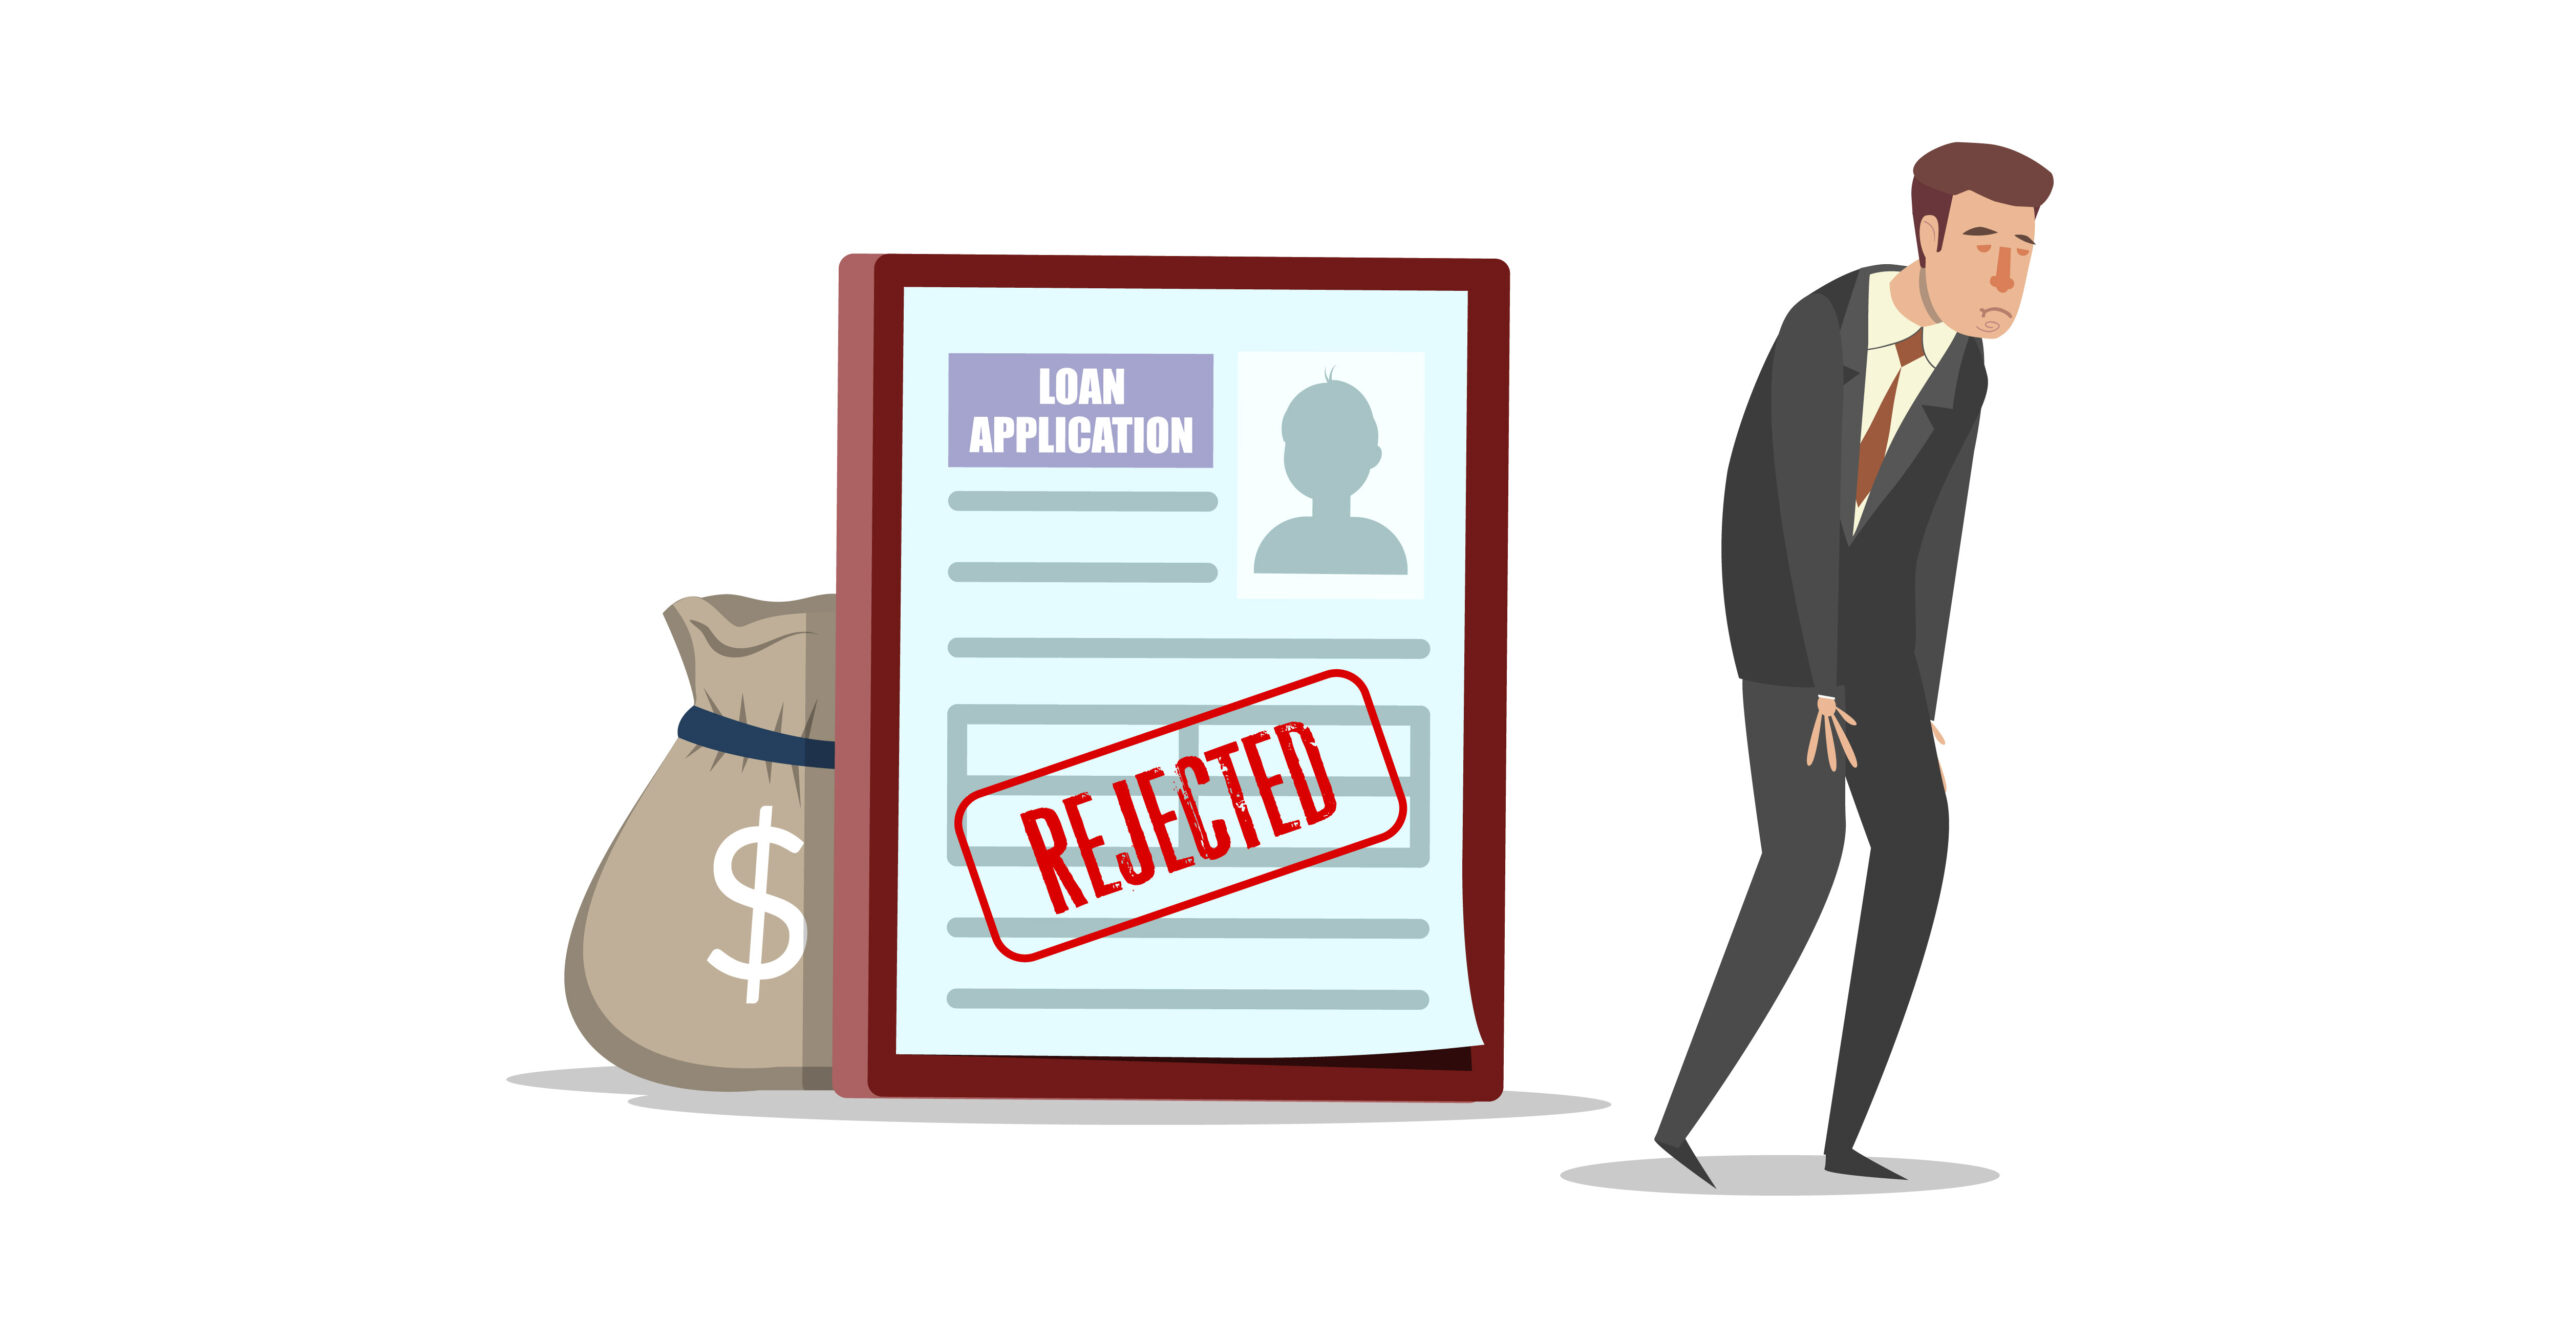 Why Did Your Bank Reject Your Business Loan Application?